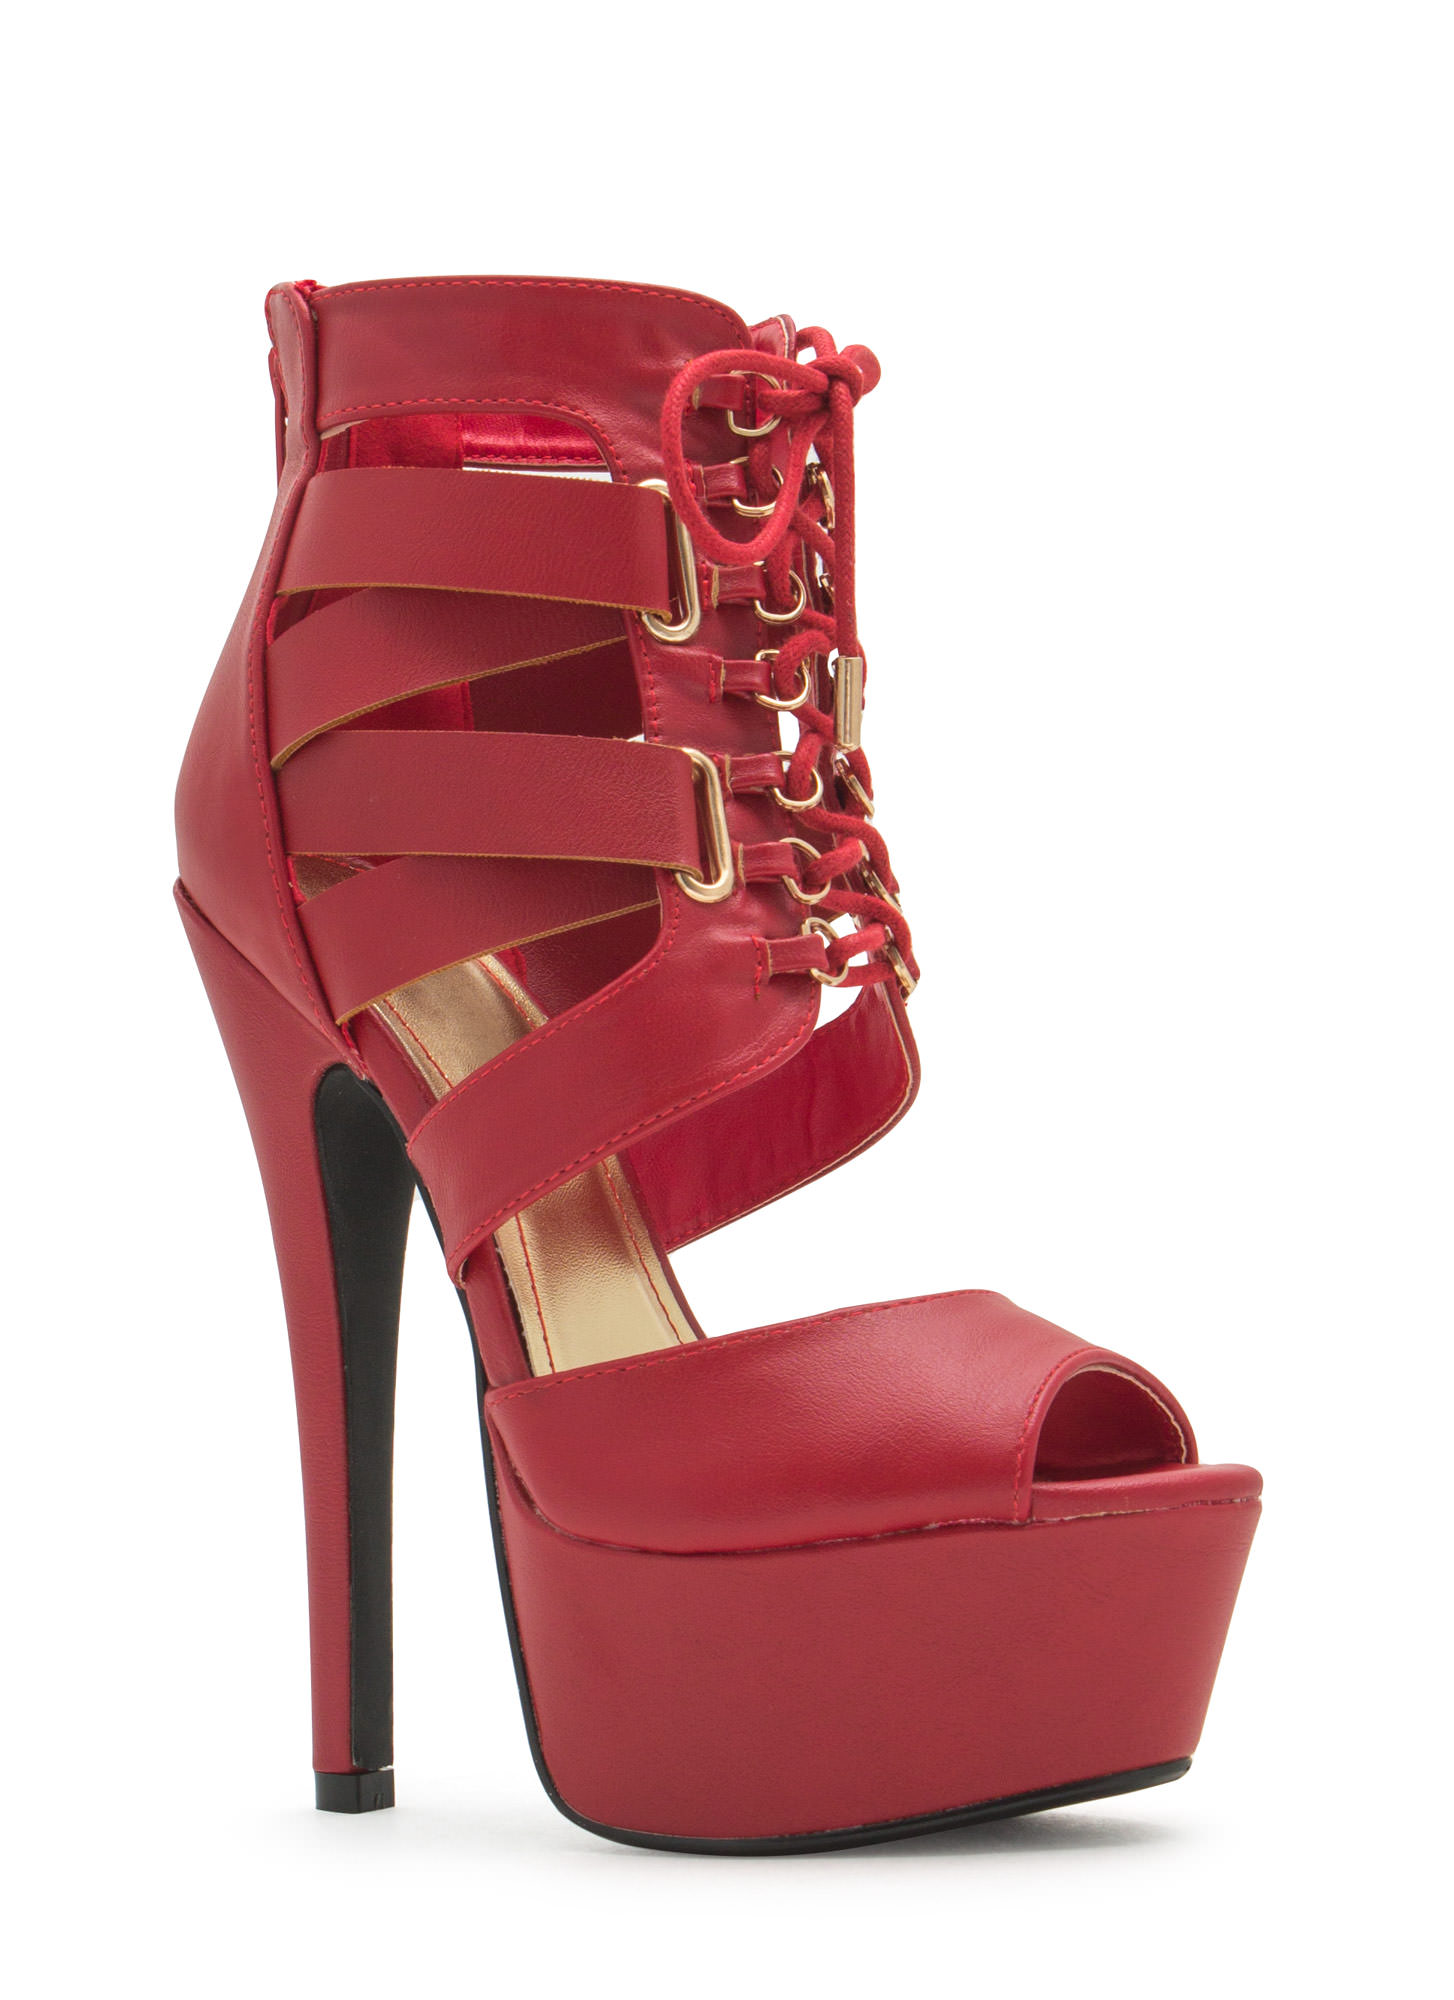 Aim High Lace-Up Platform Heels  RED